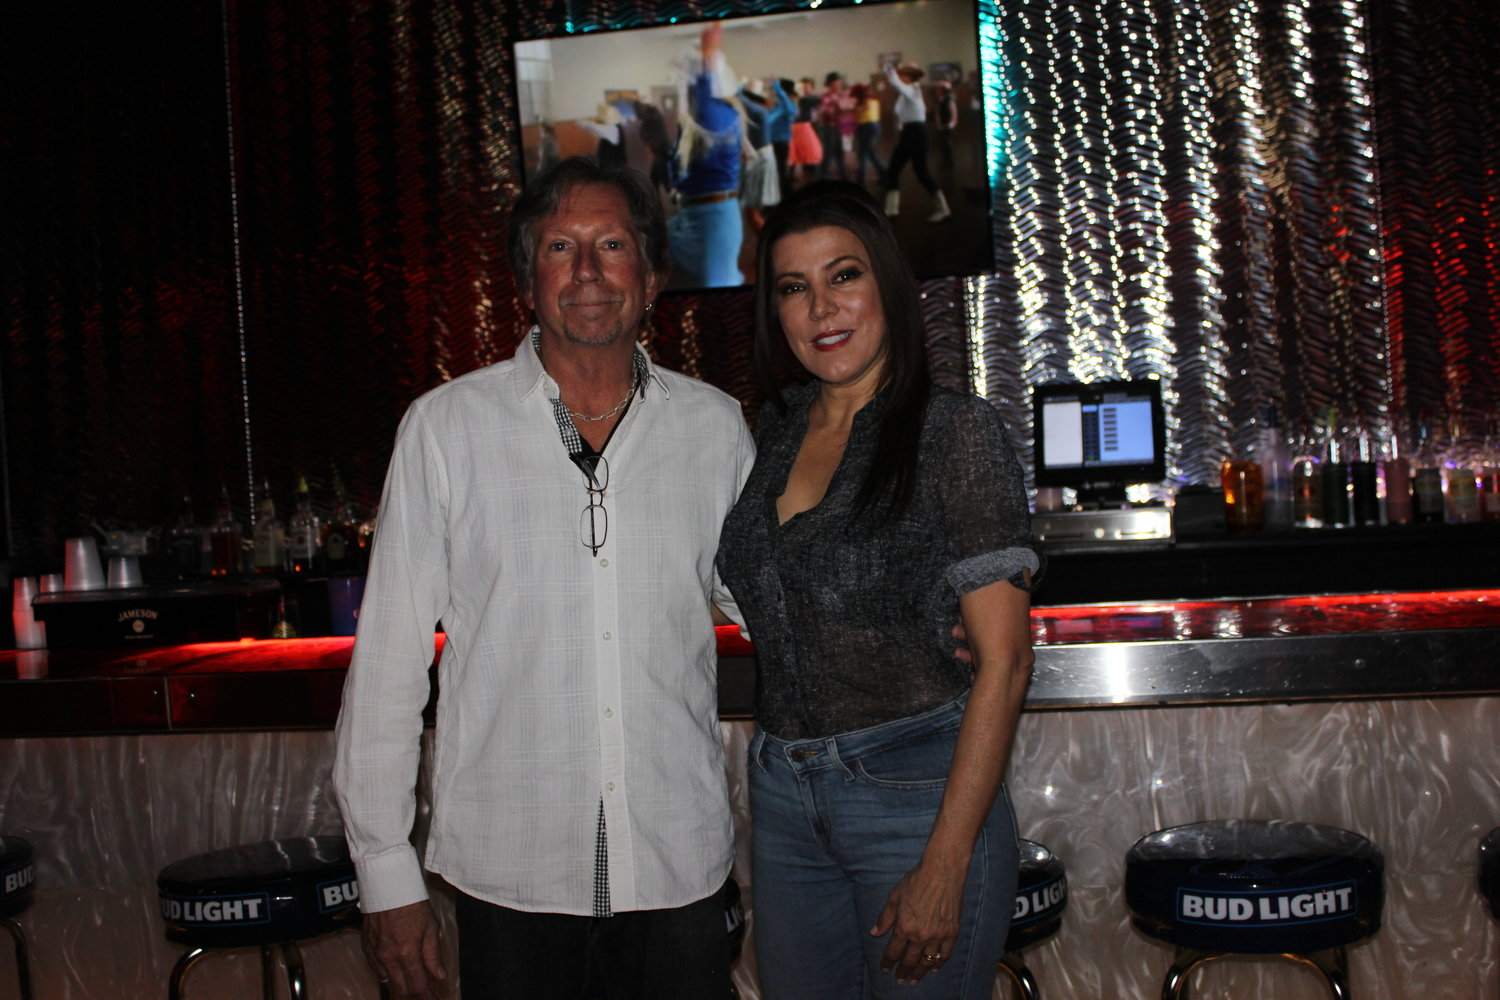 Ramada Palms General Manager Keith Martin and Club 30 manager Laurie Freilino.